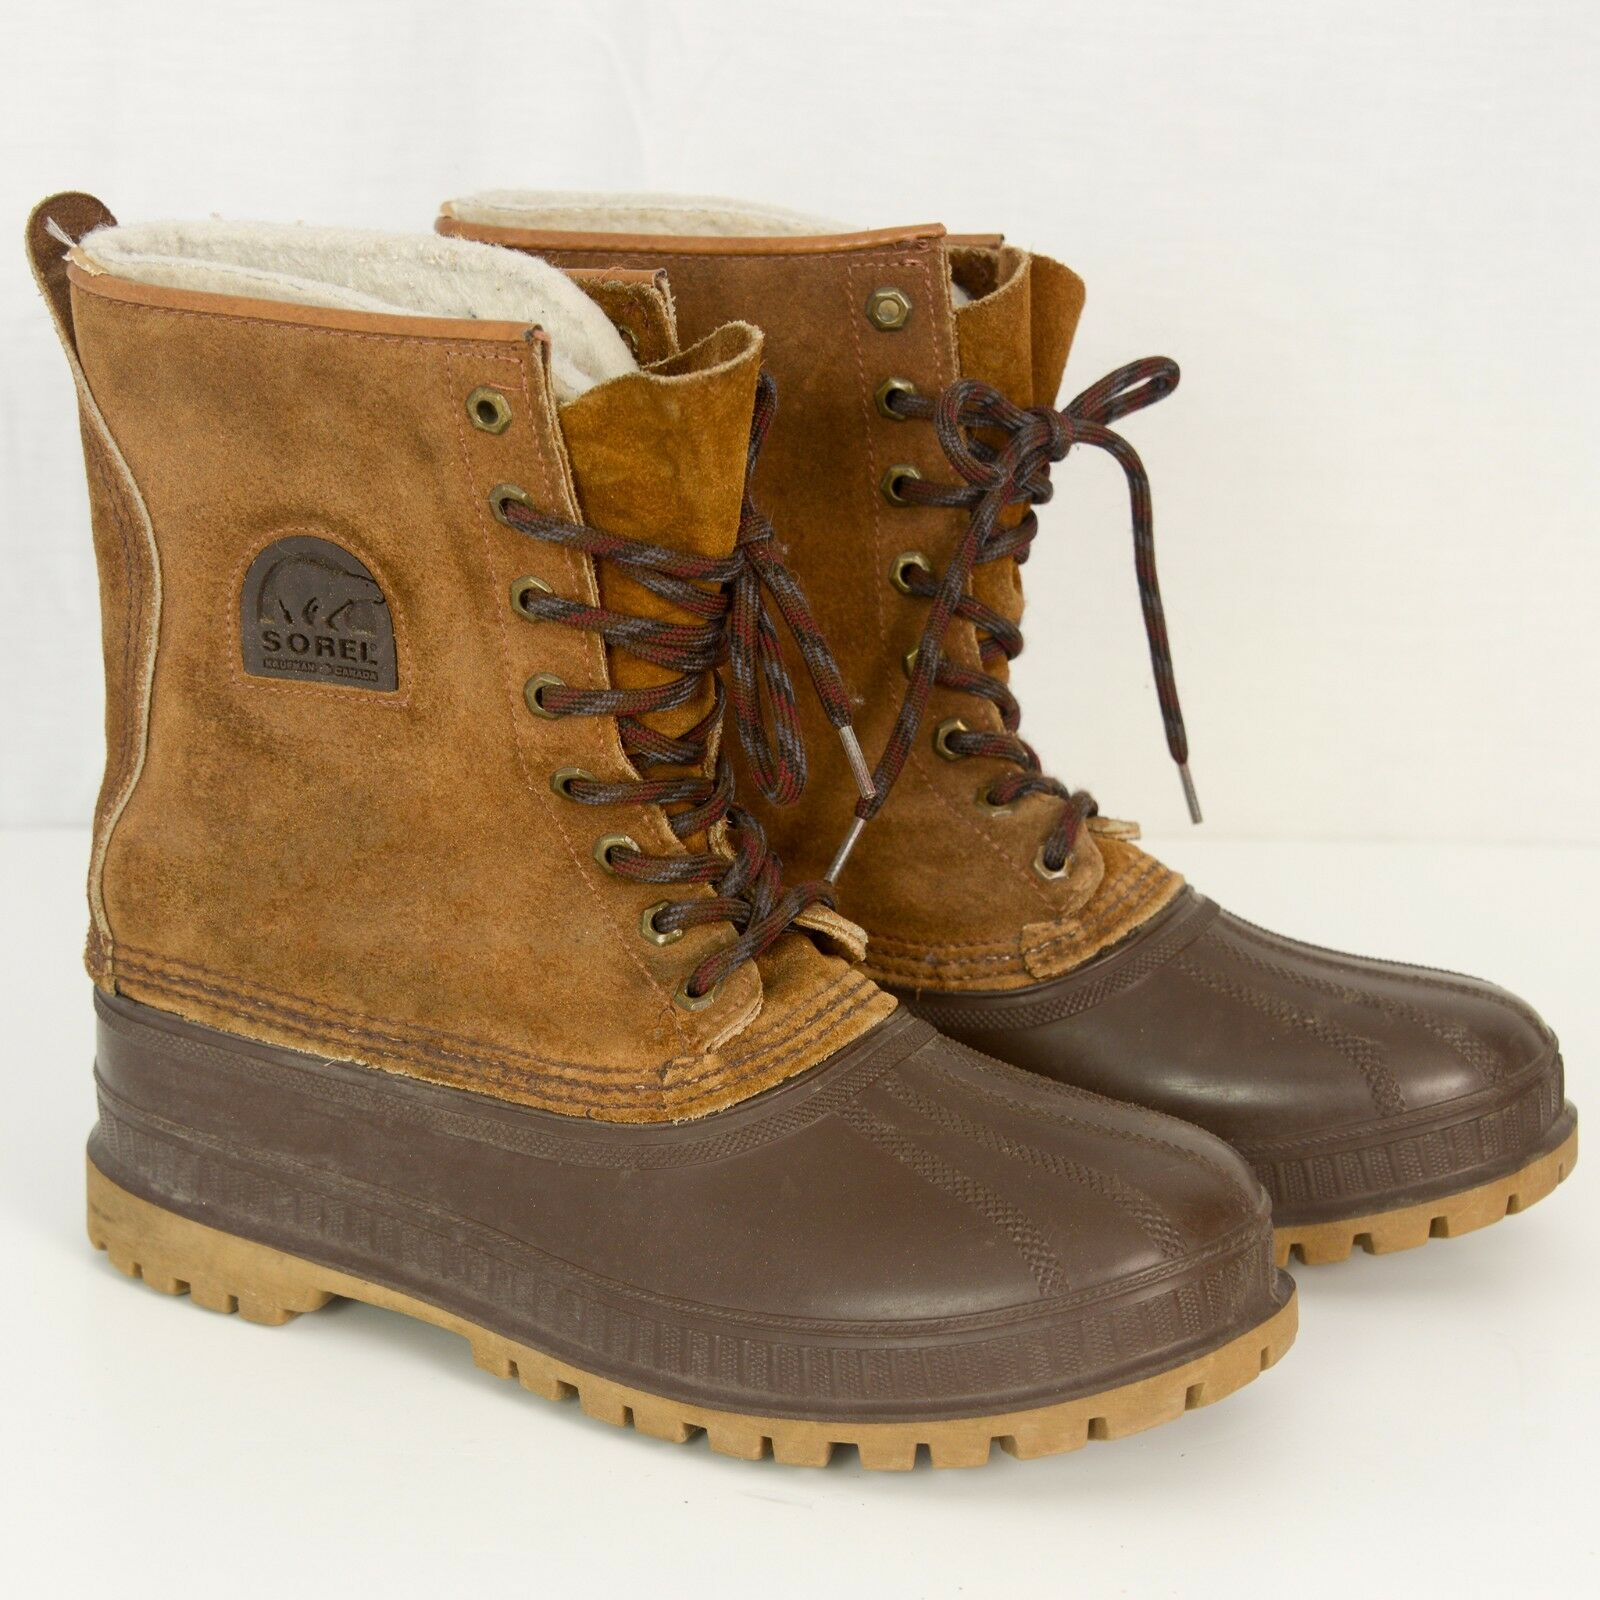 SOREL Winter Work Stivali USA Duck Muck Suede Pelle Rubber Steel Shank Uomo 8